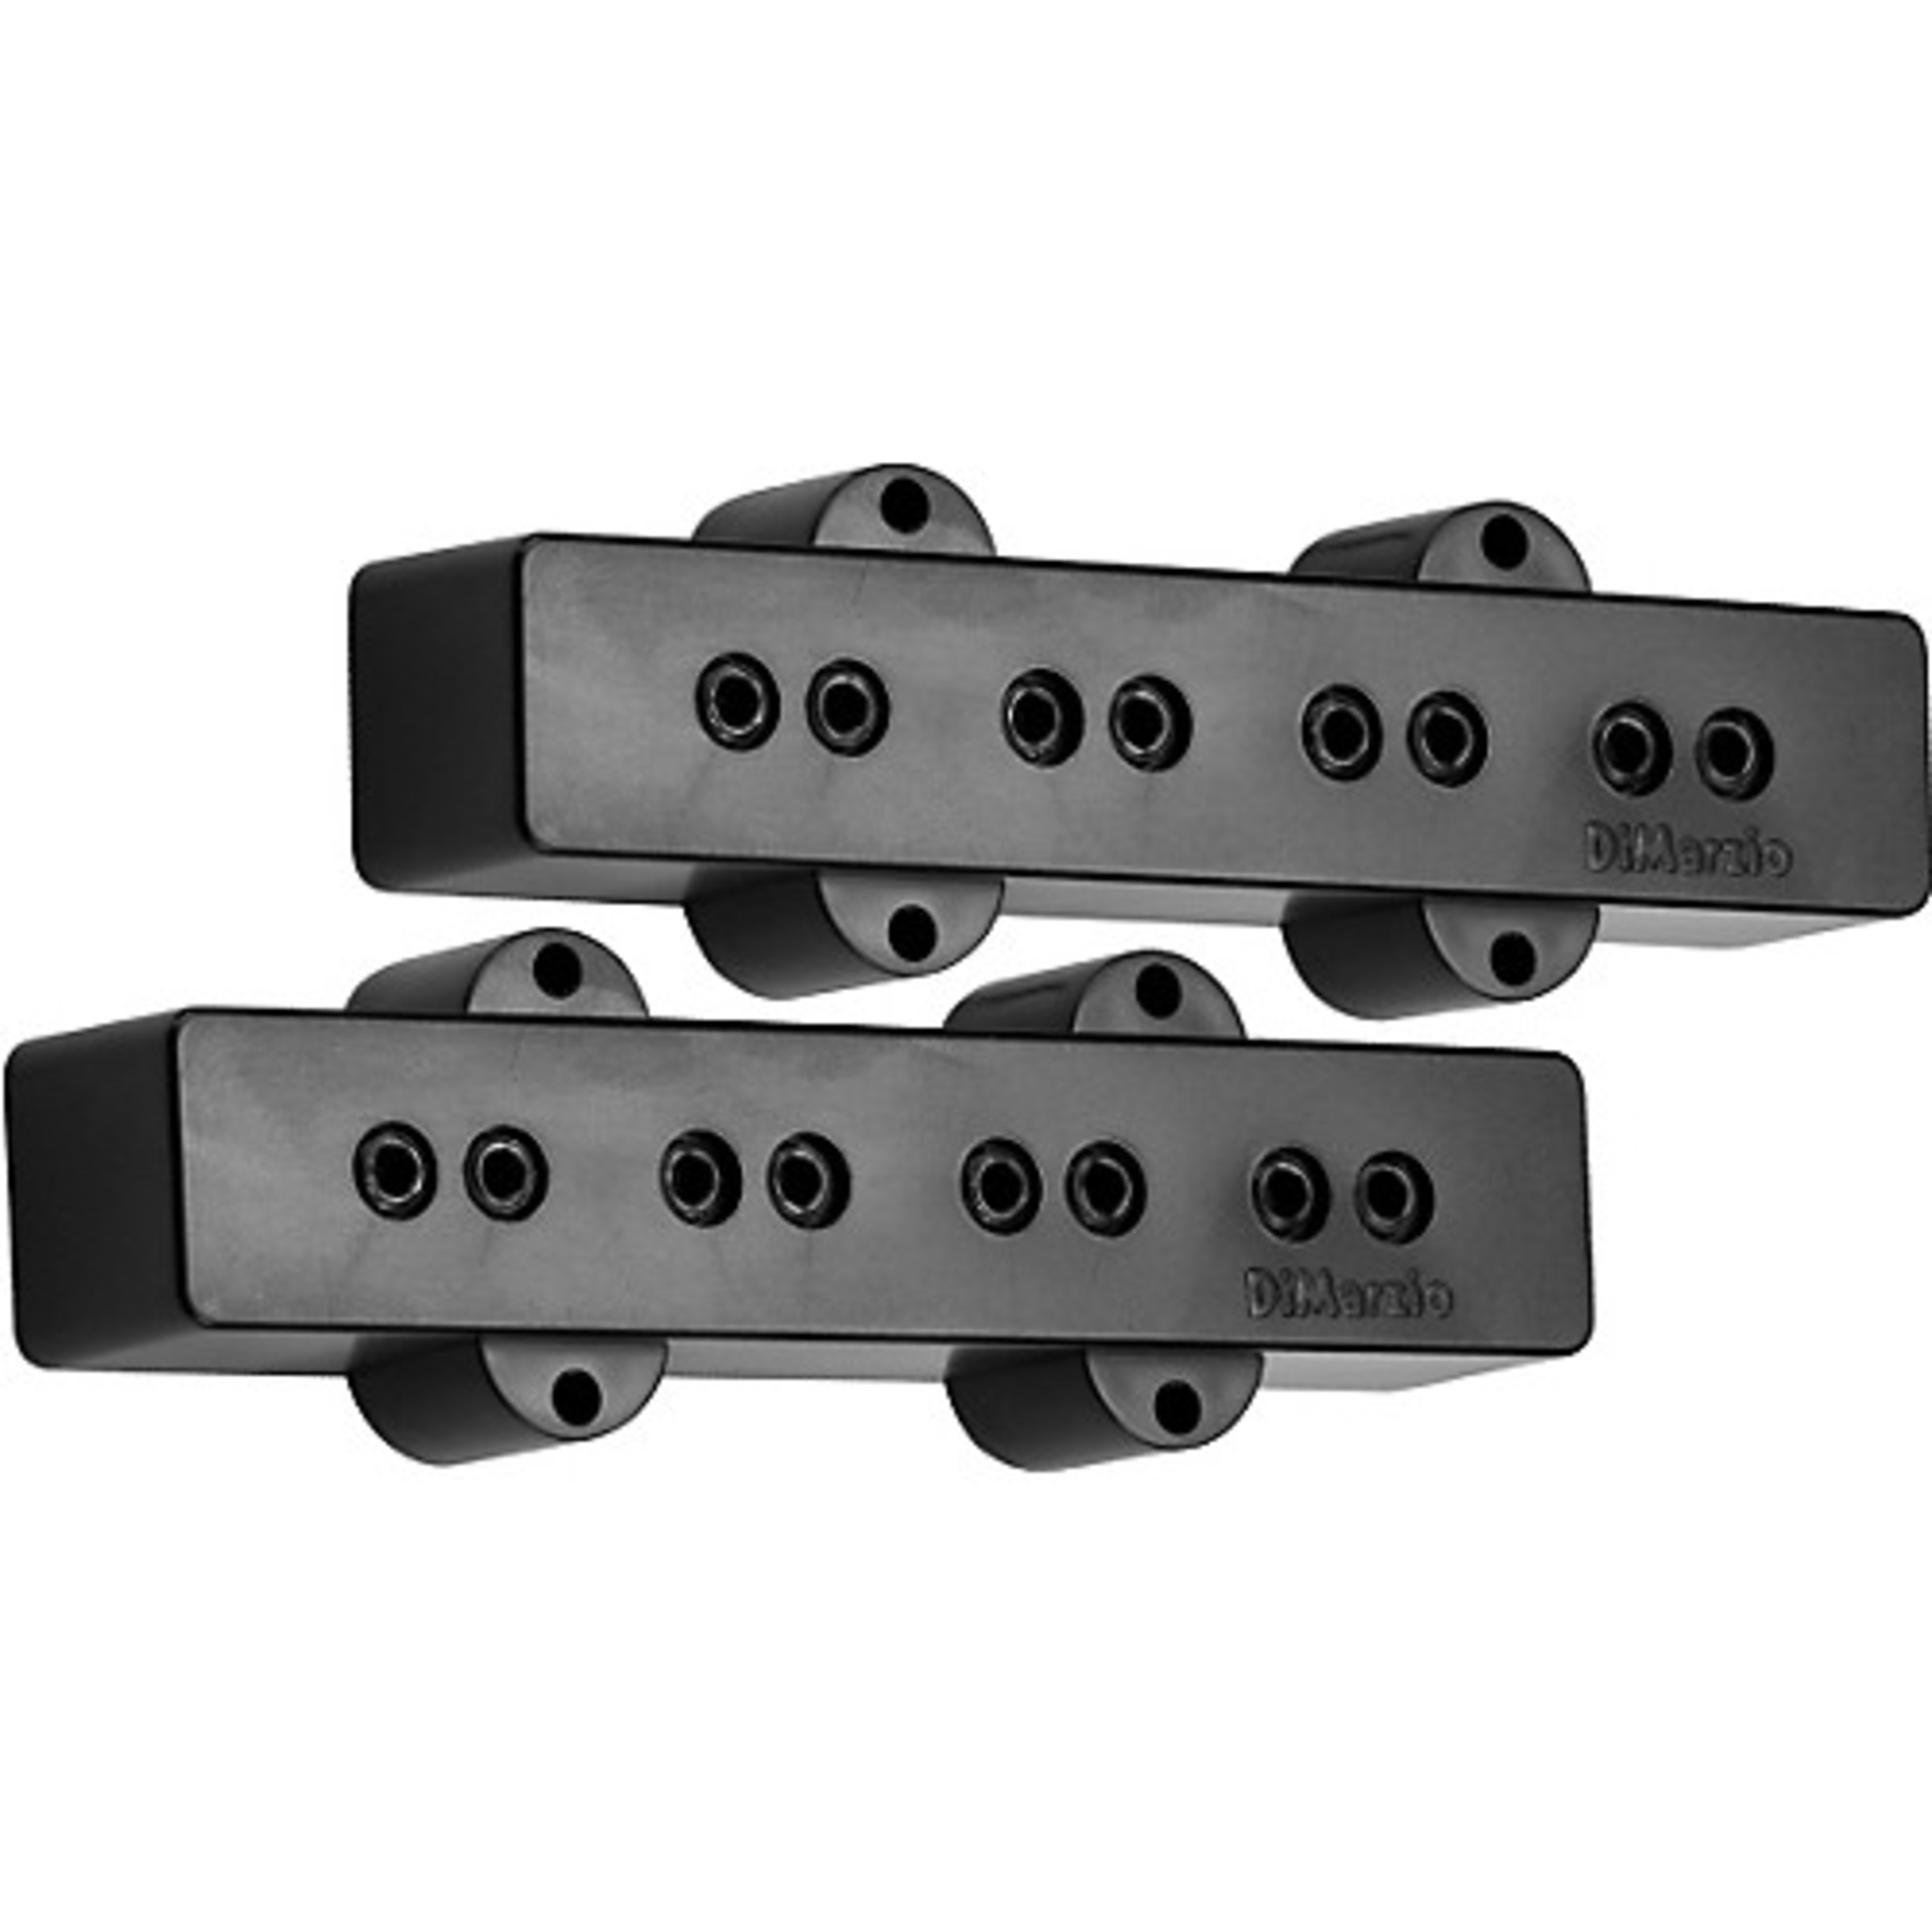 dimarzio dp123 model j jazz bass set giggear. Black Bedroom Furniture Sets. Home Design Ideas